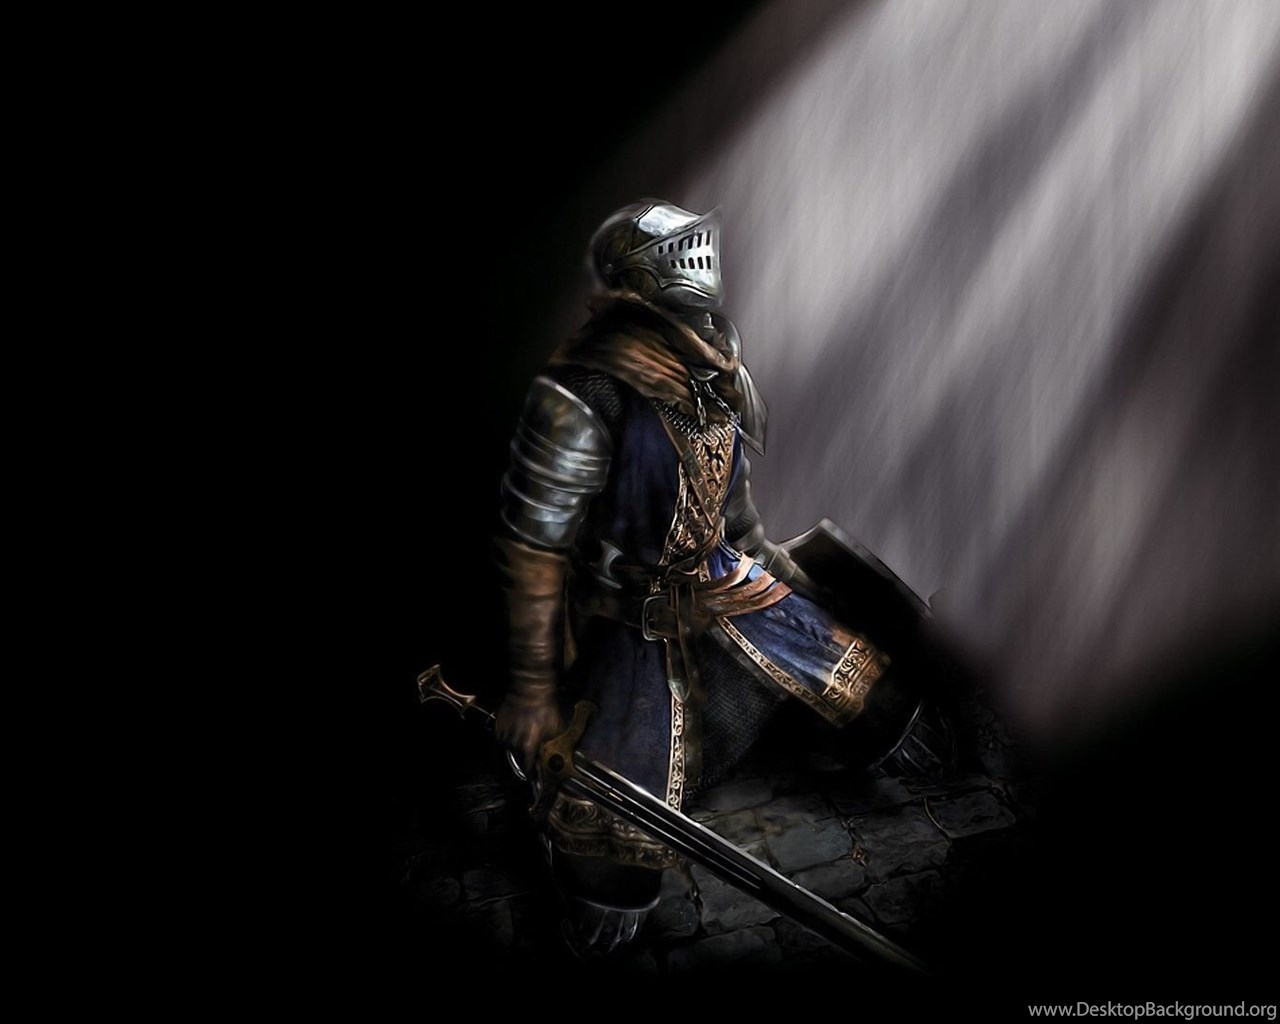 Dark Souls Hd Wallpaper Dark Souls Images Desktop Background